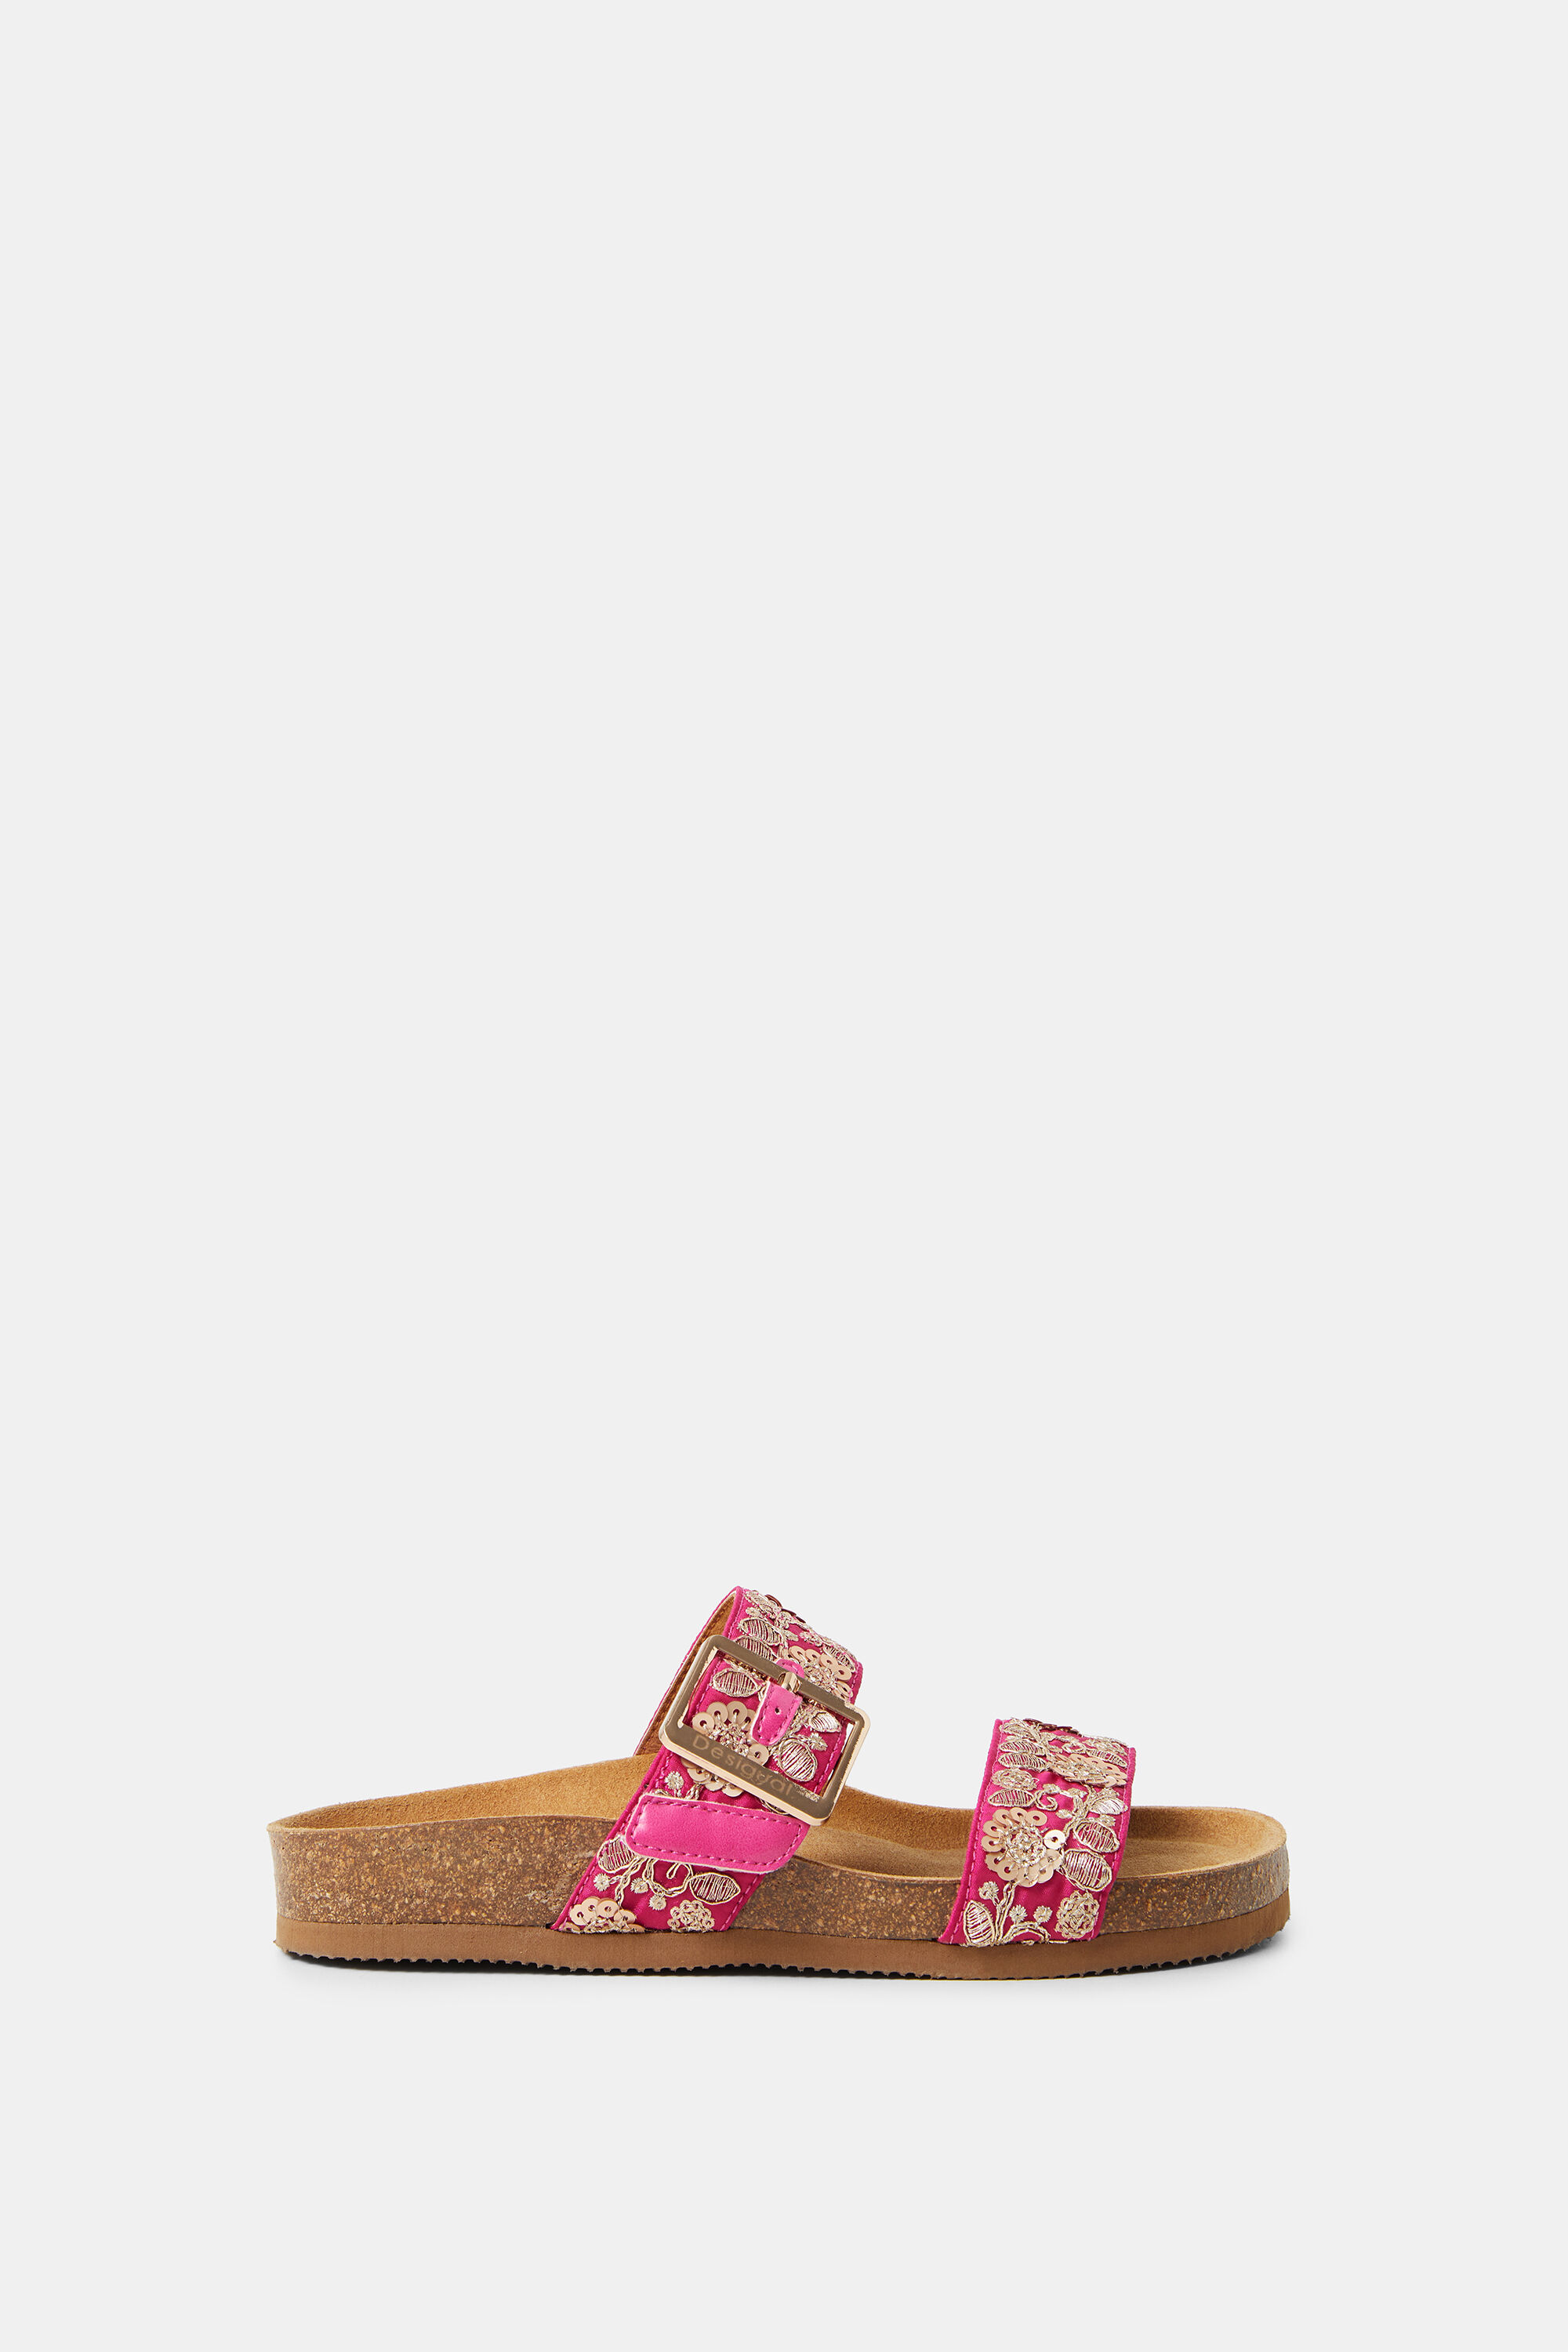 Sandals cork sole embroidered straps - RED - 38